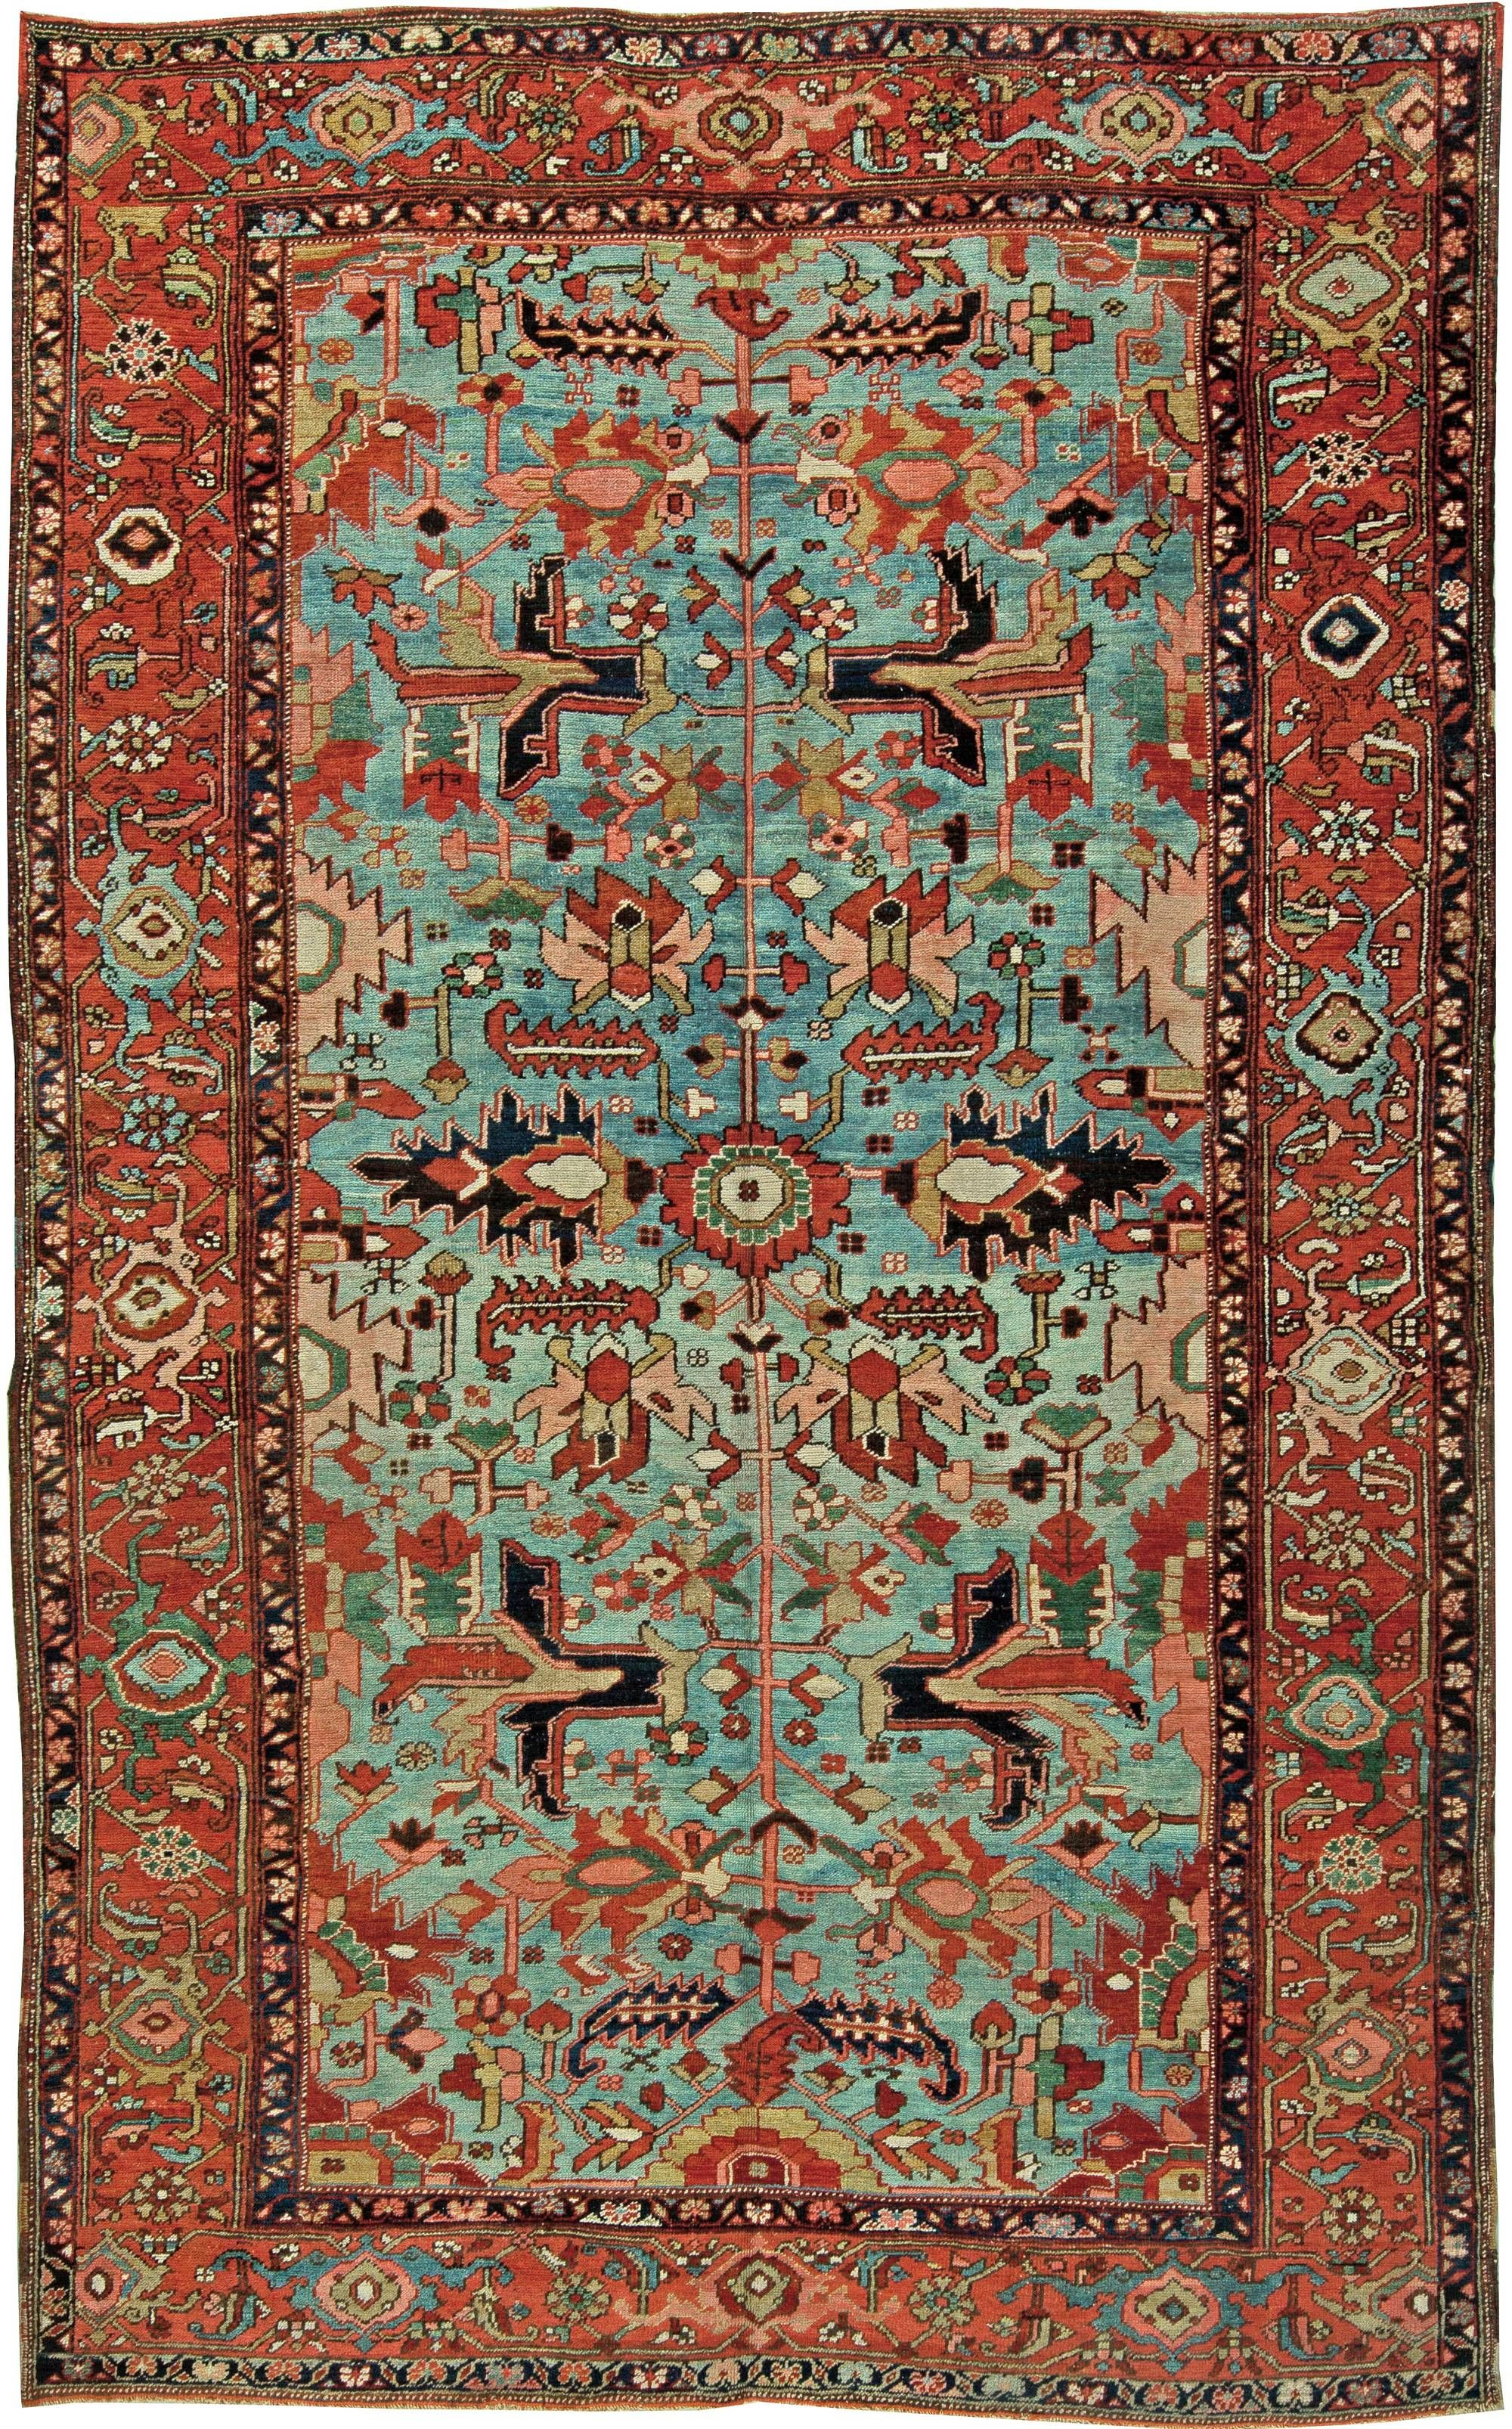 Rugs Amp Carpets Articles Antique Persian Rug Rugs On